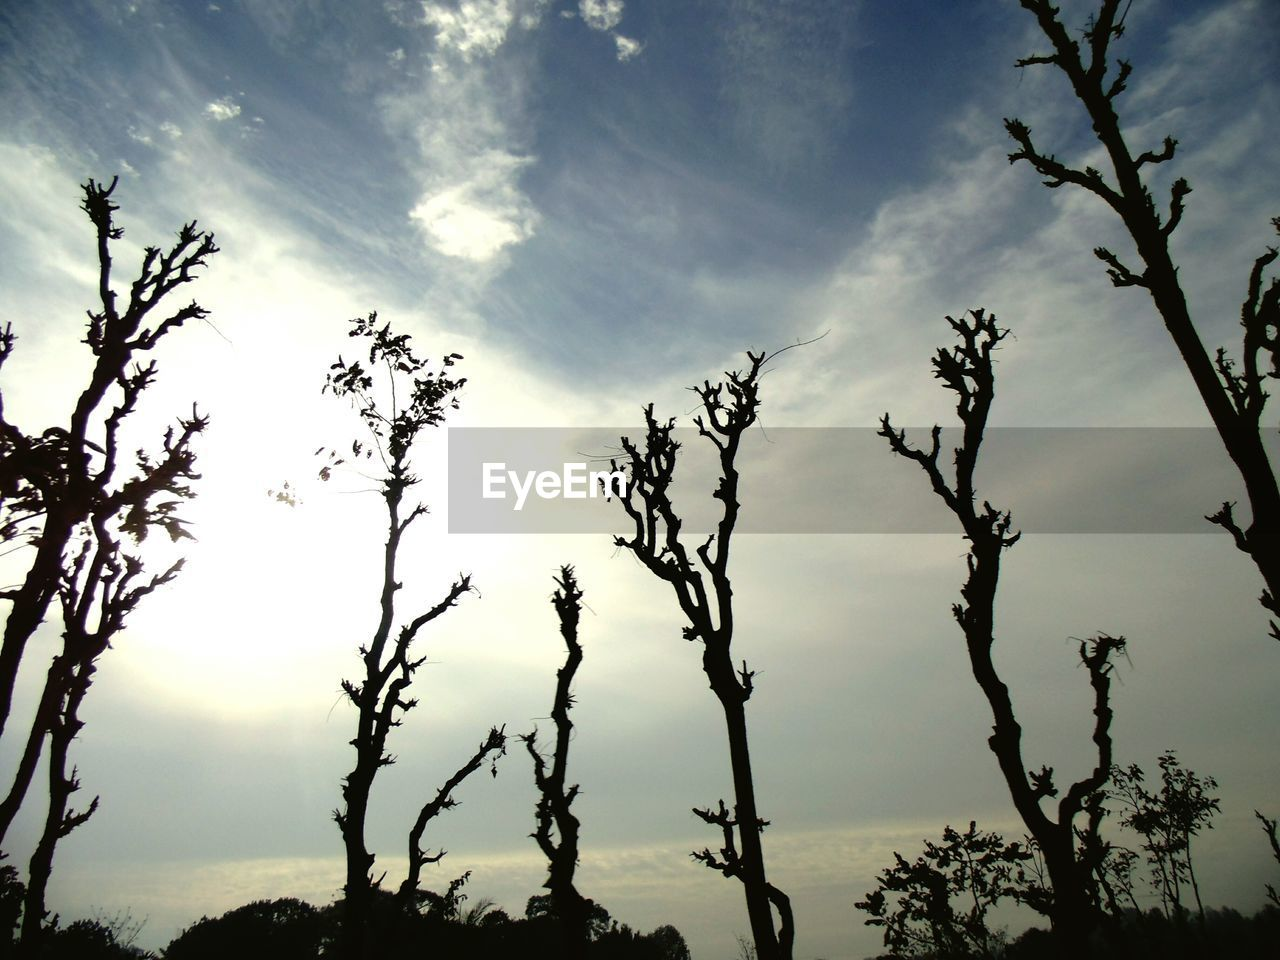 tree, nature, sky, tranquility, low angle view, no people, beauty in nature, outdoors, branch, scenics, growth, day